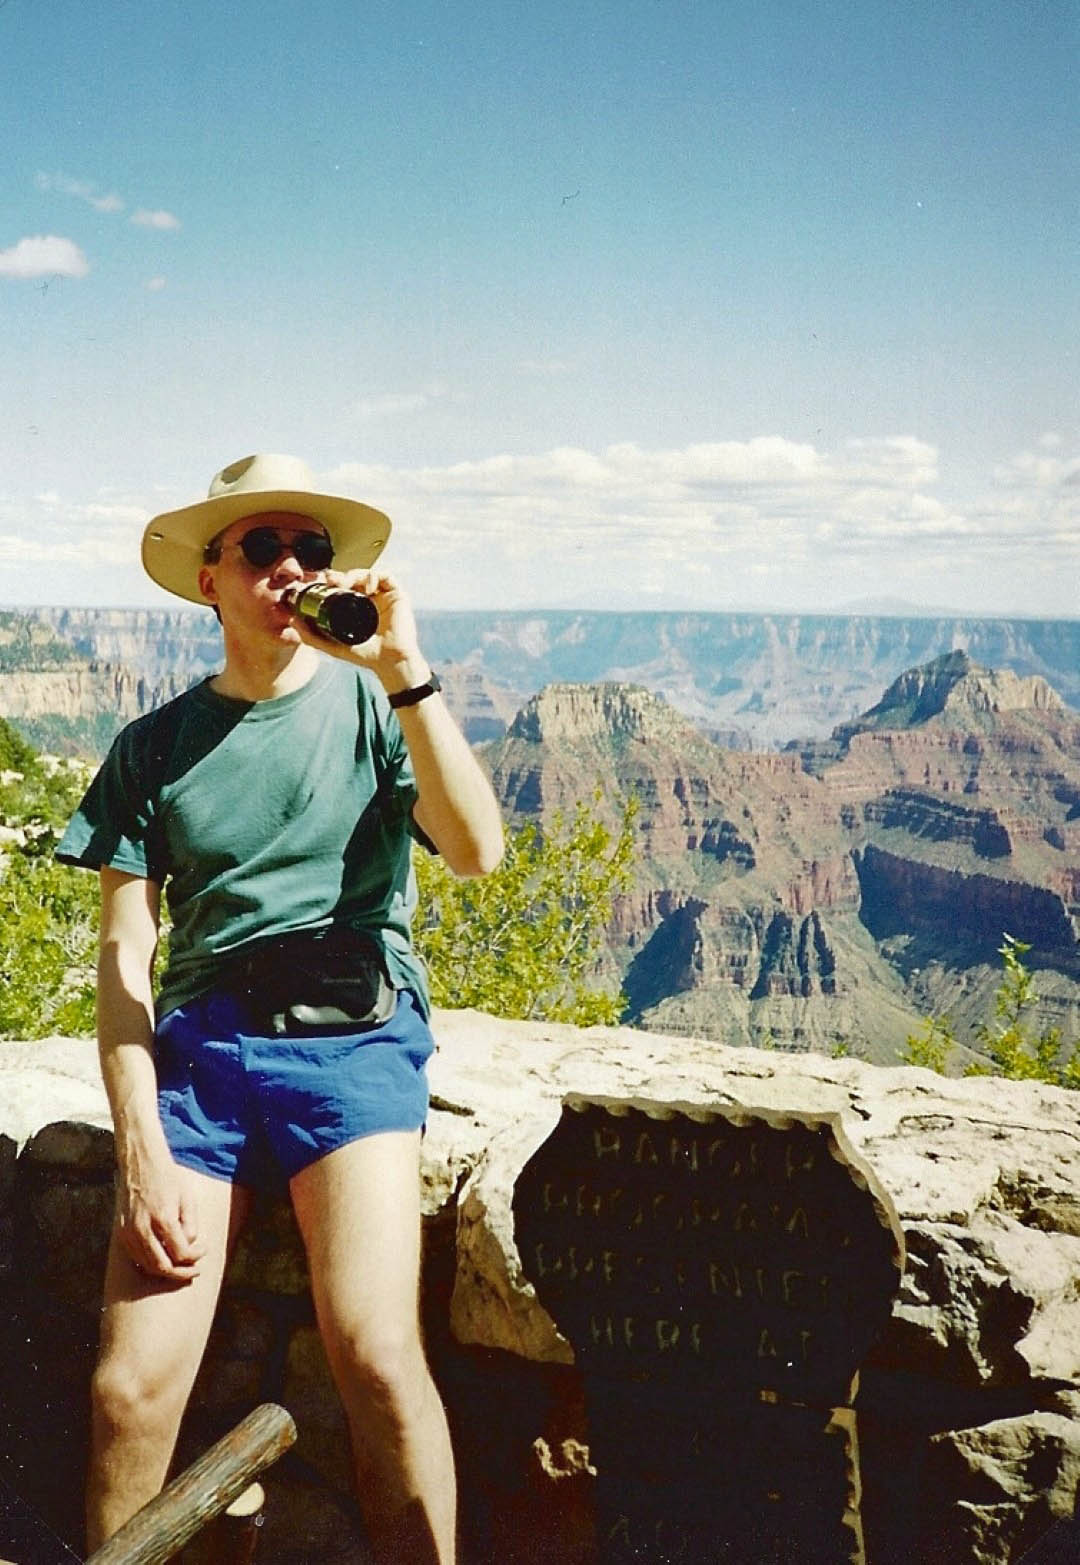 Man drinking beer with canyon landscape behind